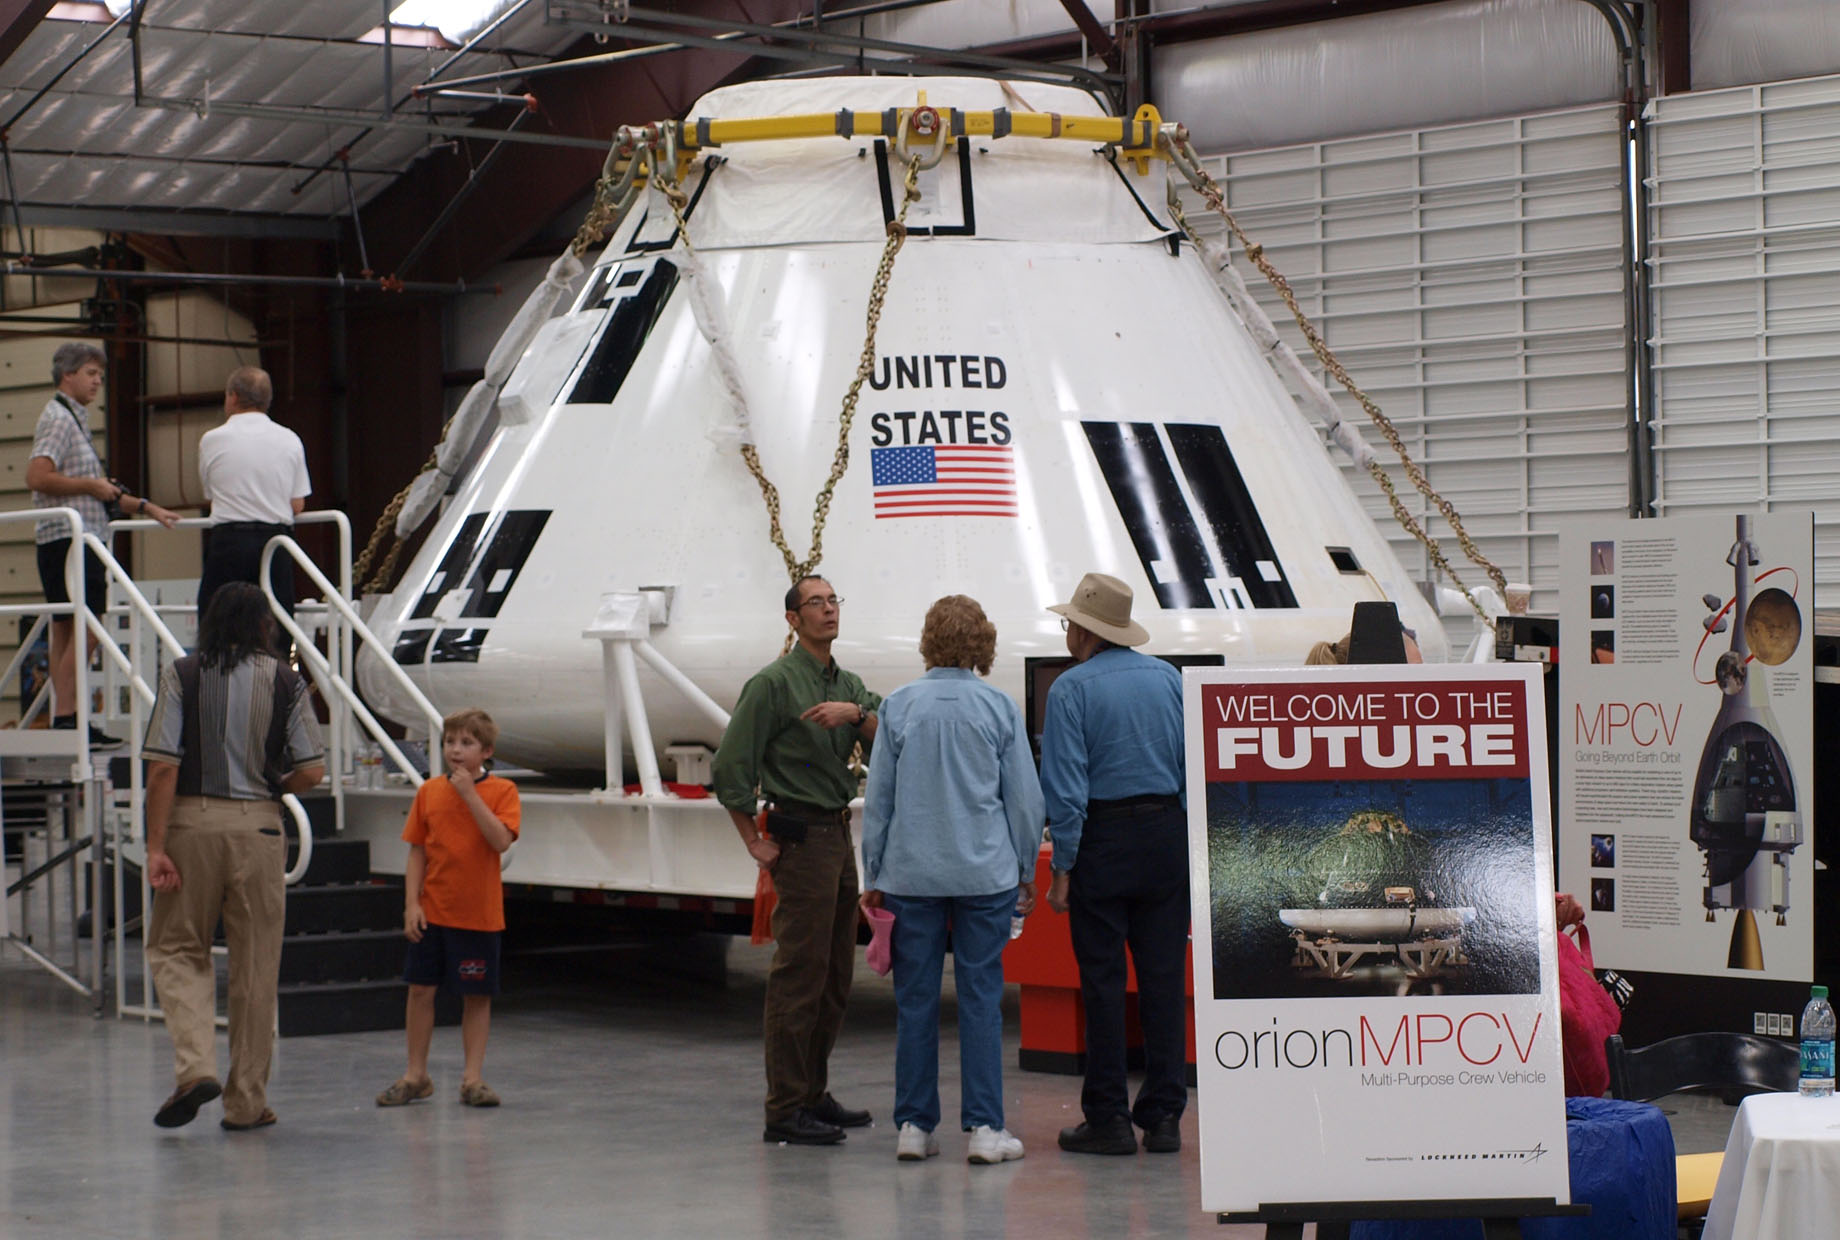 The NASA Orion traveling exhibit at Pima Air & Space Museum during June 2011. Photo by John Bezosky Jr.